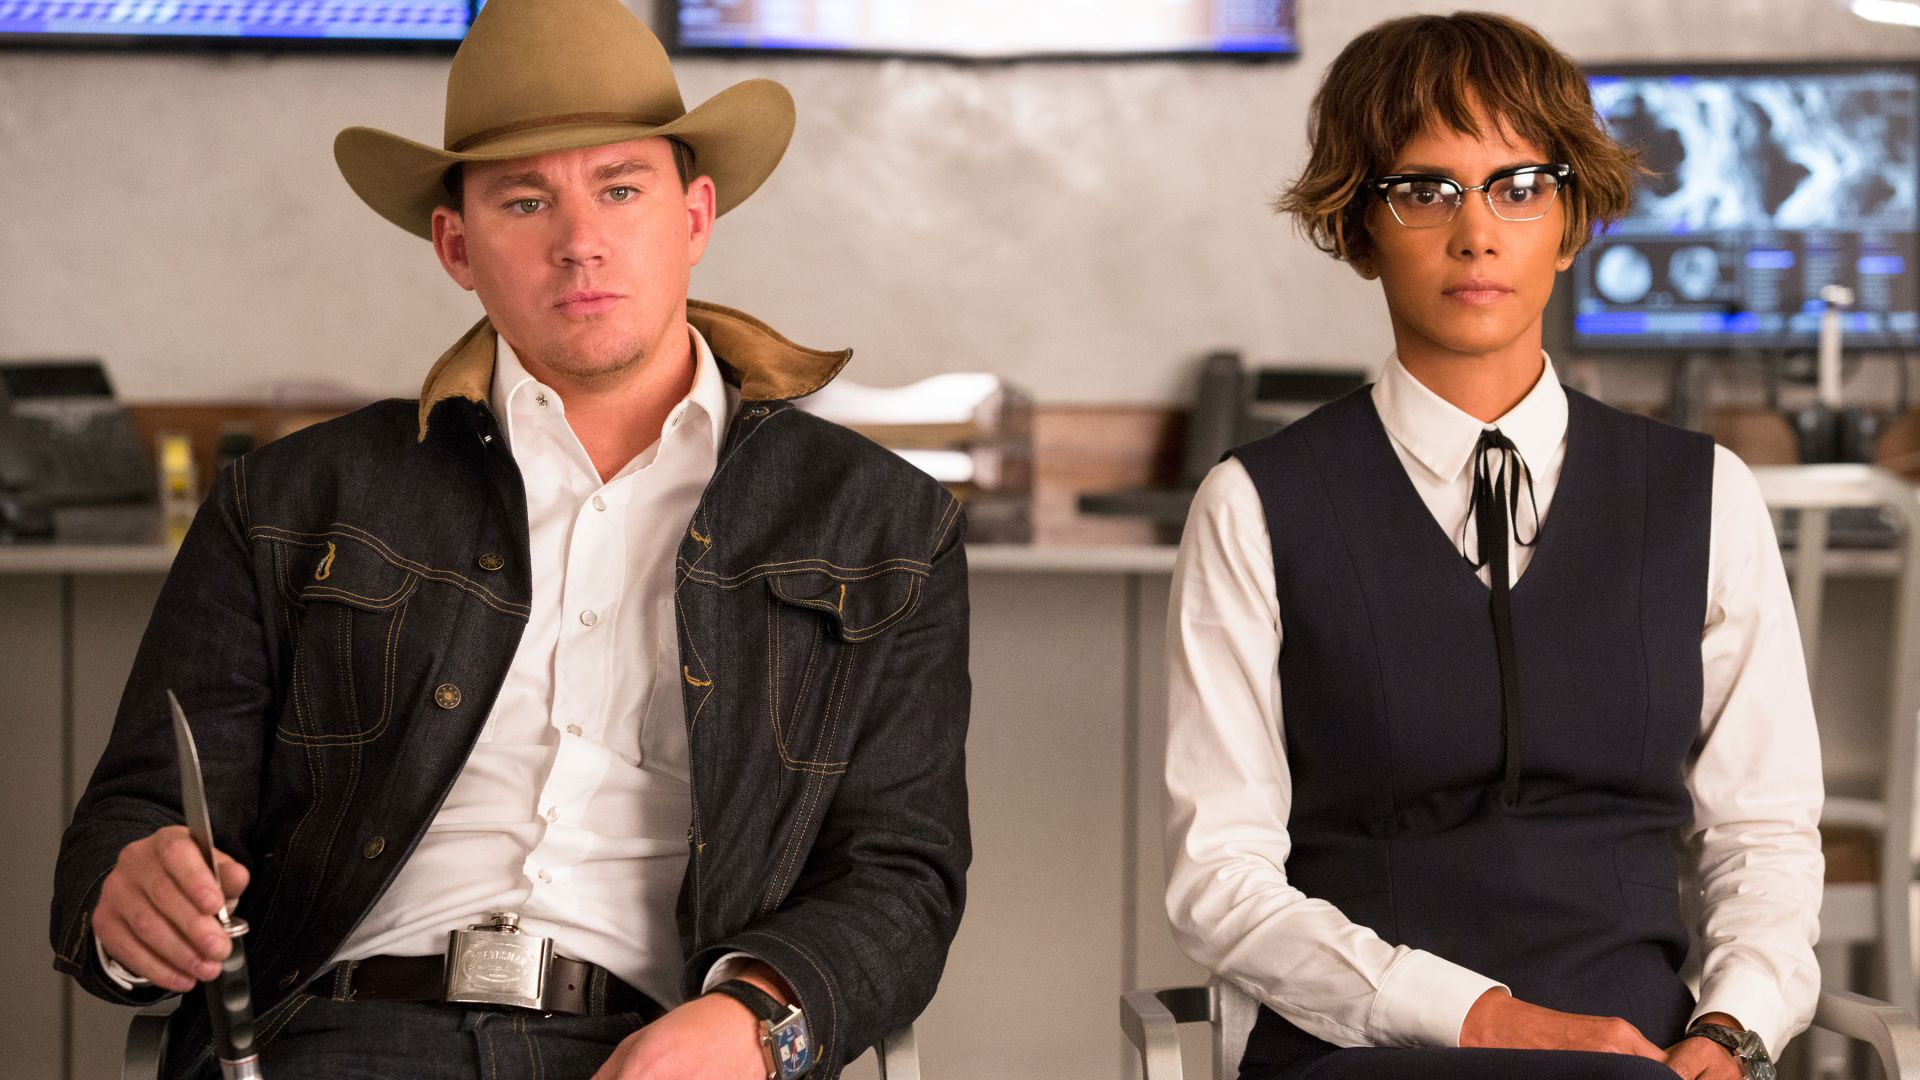 Kingsman: The Golden Circle, Channing Tatum, Halle Berry, 4k (horizontal)